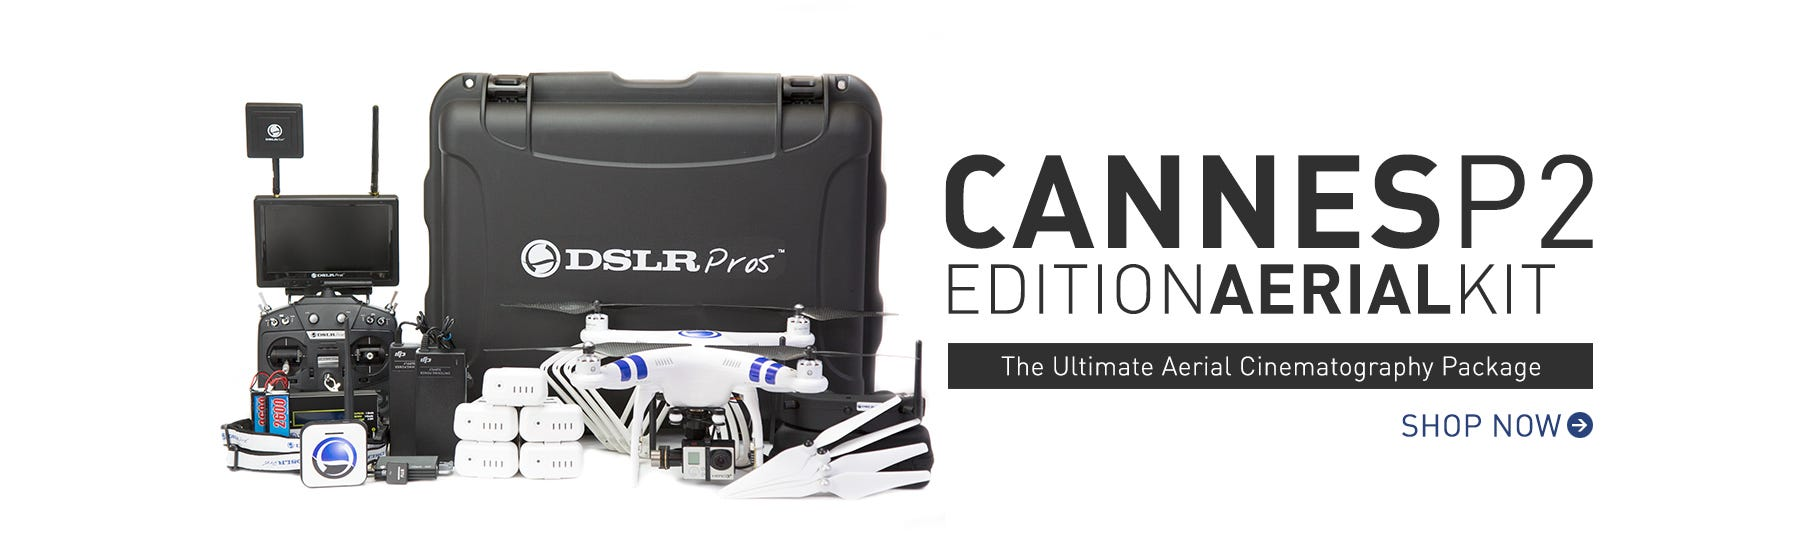 cannes quadcopter kit